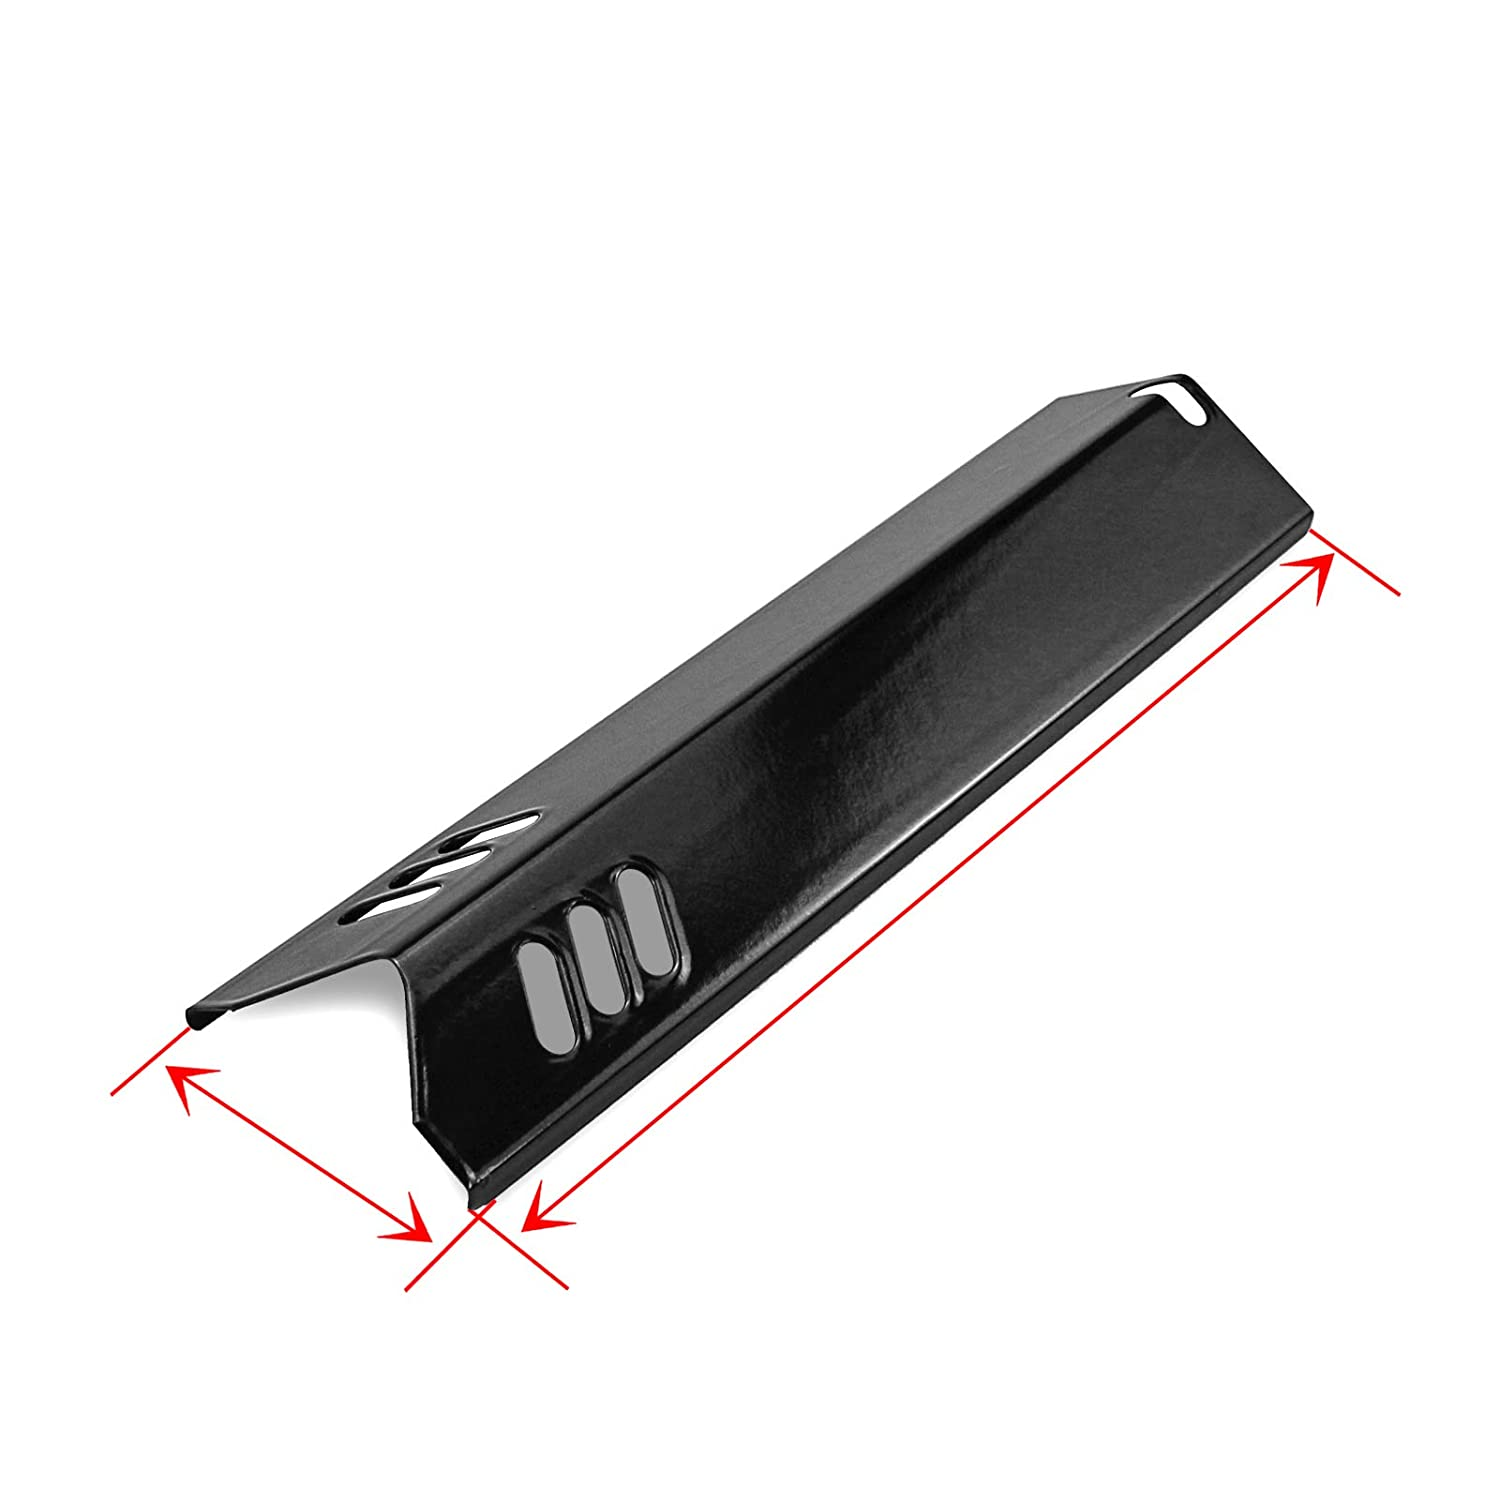 Porcelain Steel 4 Pack BY14-101-001-04 Uniflame Utheer 15 in Grill Heat Shield Plate//Burner Cover//Flame Tamer for Backyard GBC1460W Dyna-glo BY13-101-001-13 GBC1461W BHG Grill Models Montana